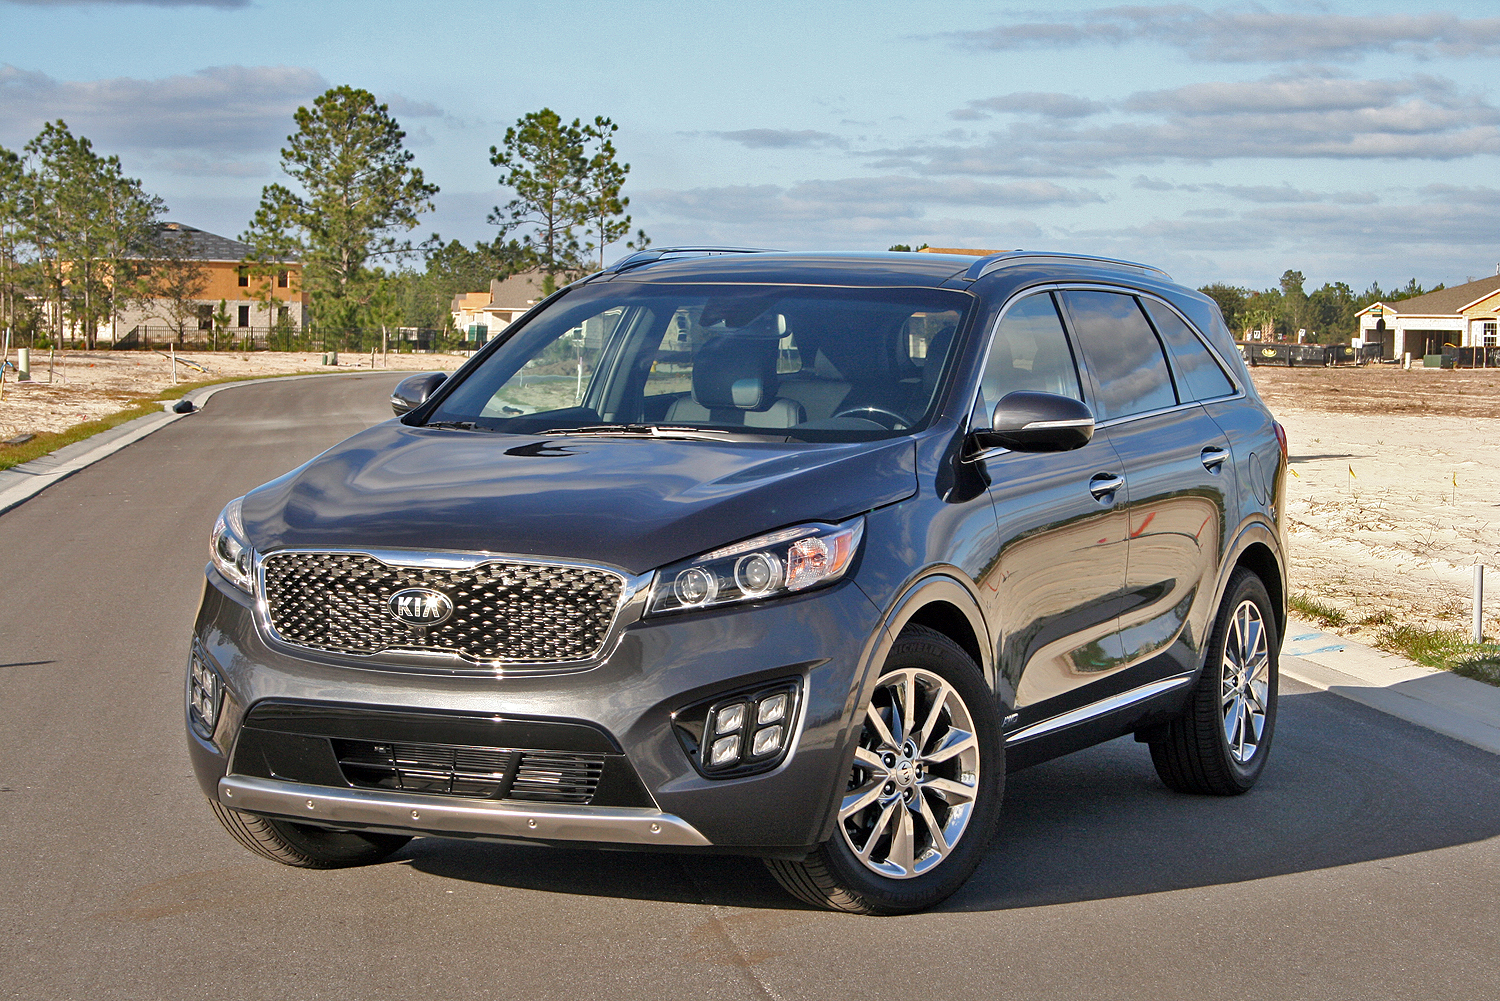 Kia Sorento: Changing a tire with TPMS